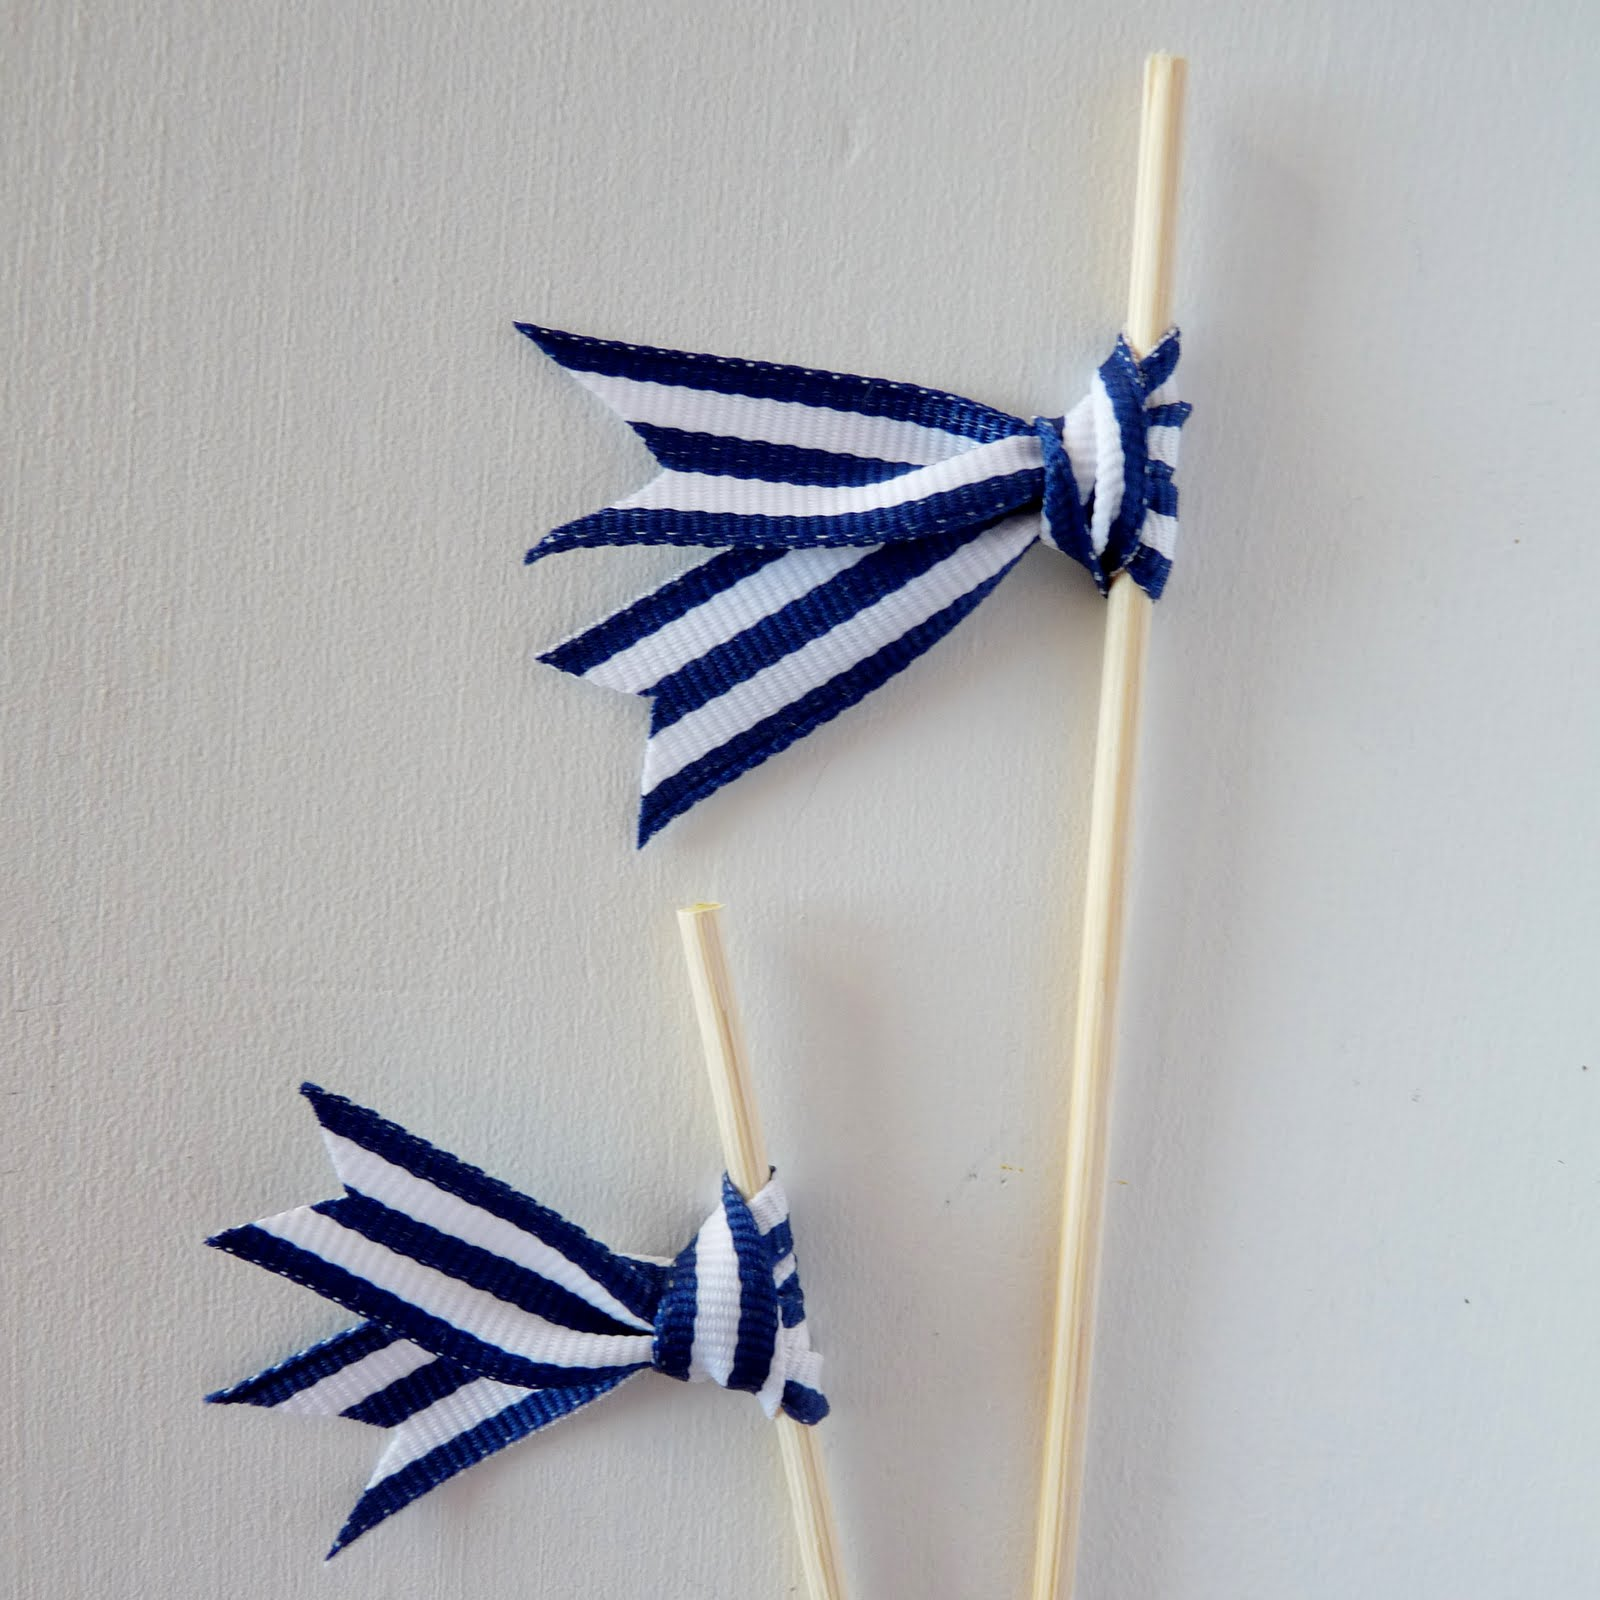 DIY navy striped bbq skewers